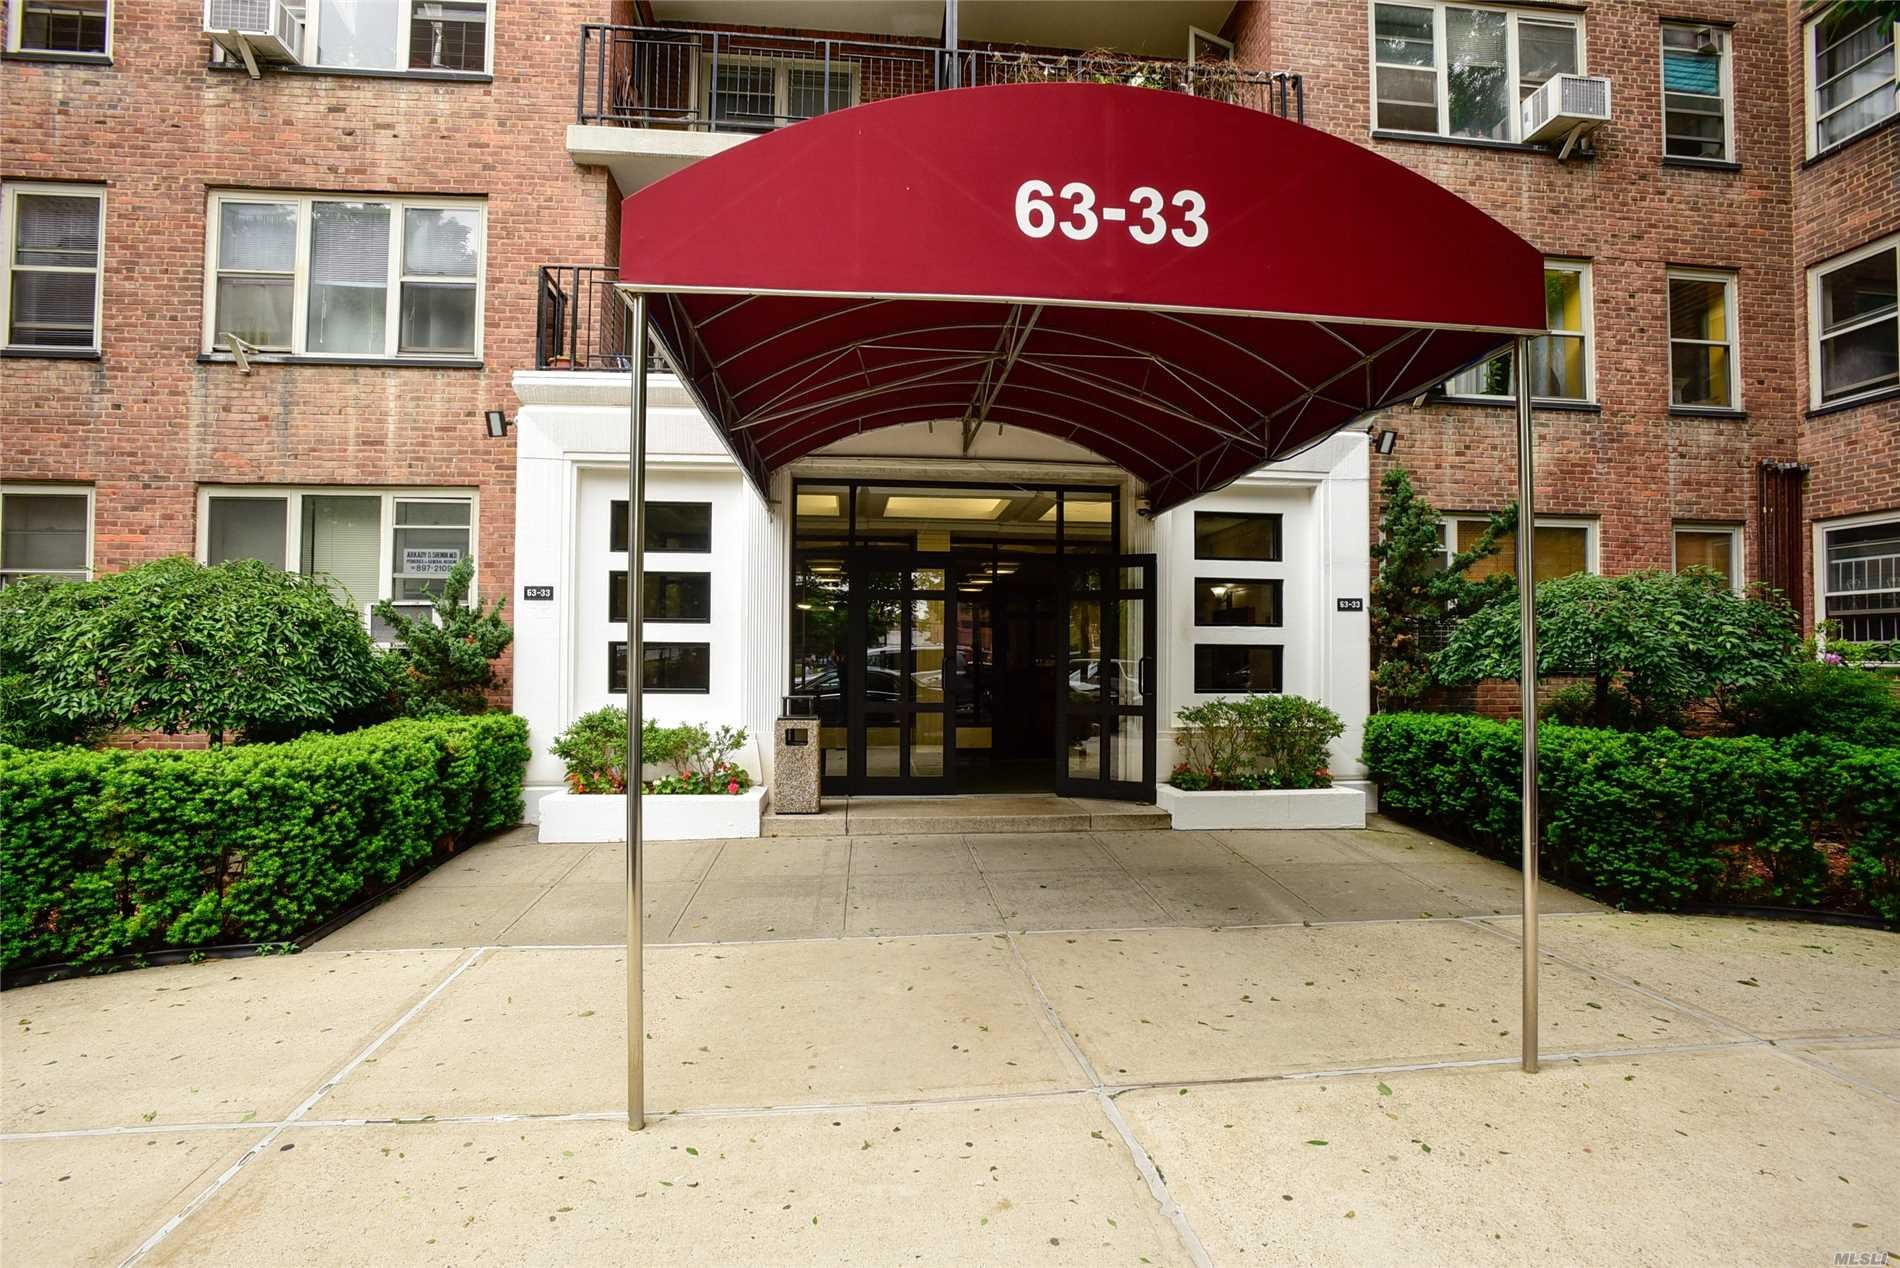 Spacious 1 Bedroom Doorman Building With Parking Space Included. Features Windows In Every Room, Plenty Of Closet Space. Prime Location In Rego Park, Walking Distance To M & R Train, Supermarkets, & Restaurants. Laundry In Basement. Lots Of Potential!!!